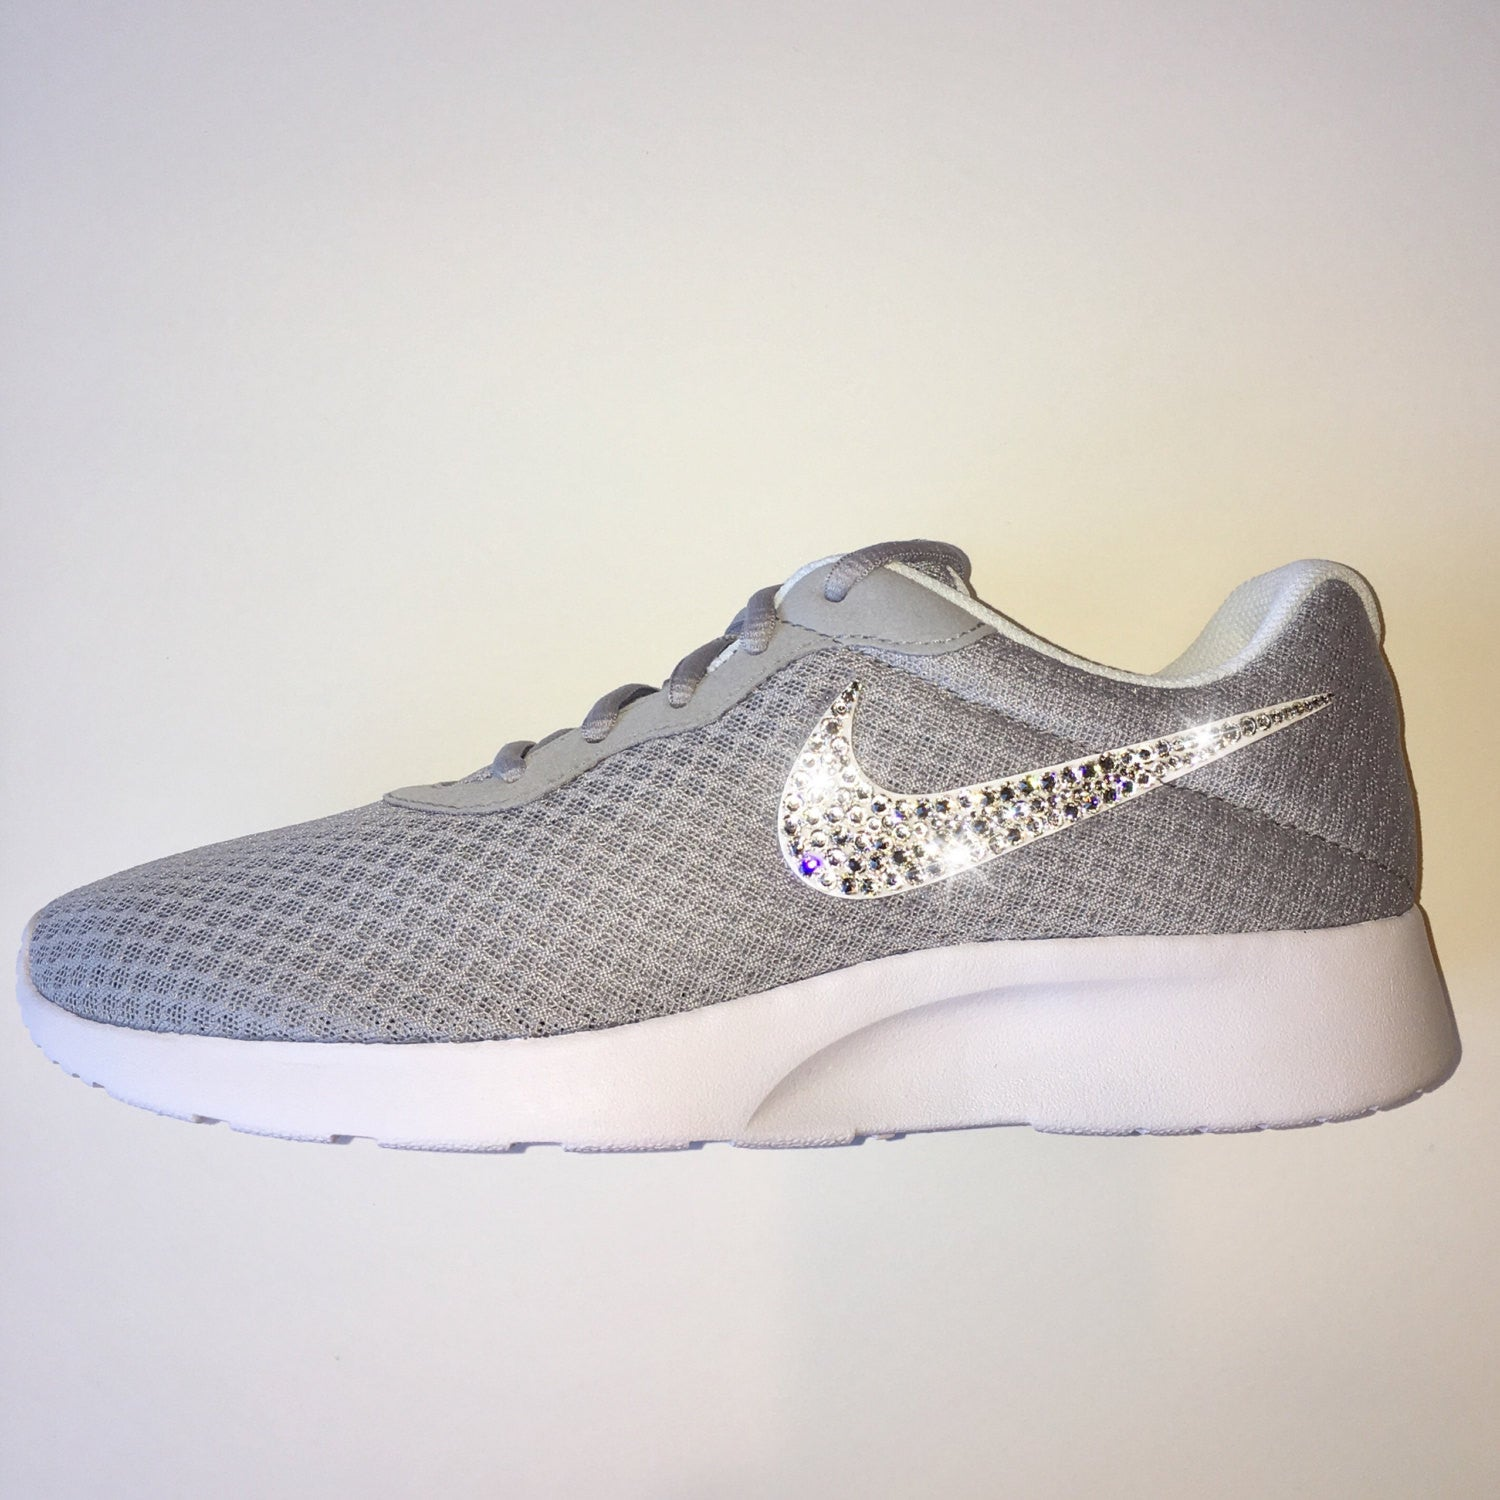 half off 4e7bc 01628 ... Bling Nike Tanjun Shoes with Swarovski Crystals  Grey   White    Bedazzled Shoes with Rhinestones ...